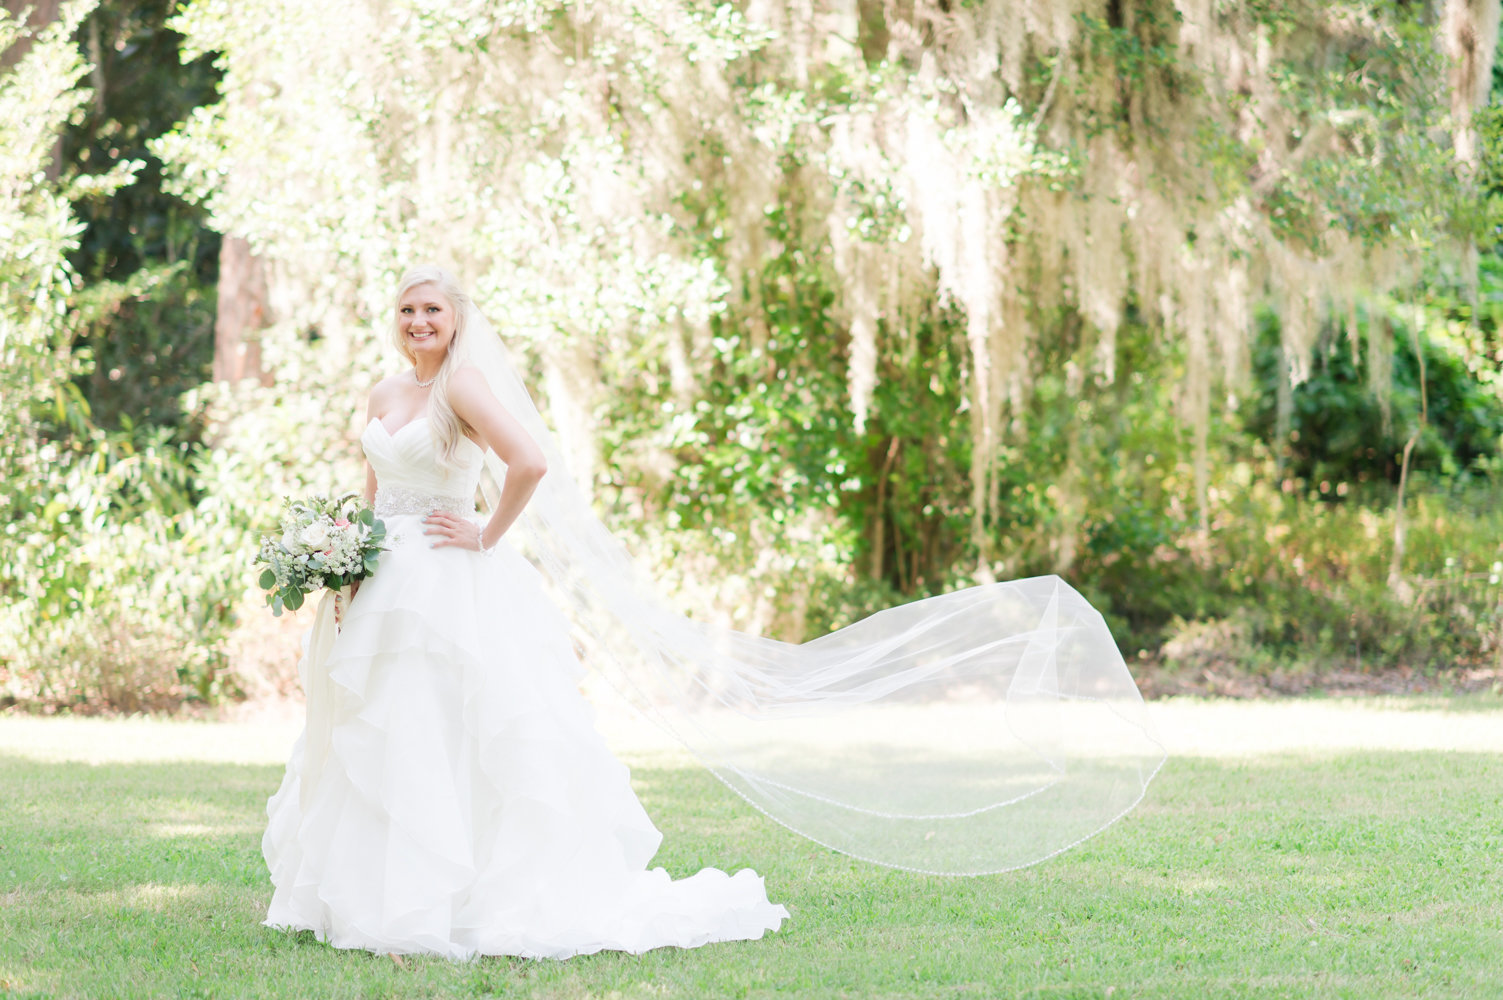 bridal-portraits-christina-forbes-photography-27